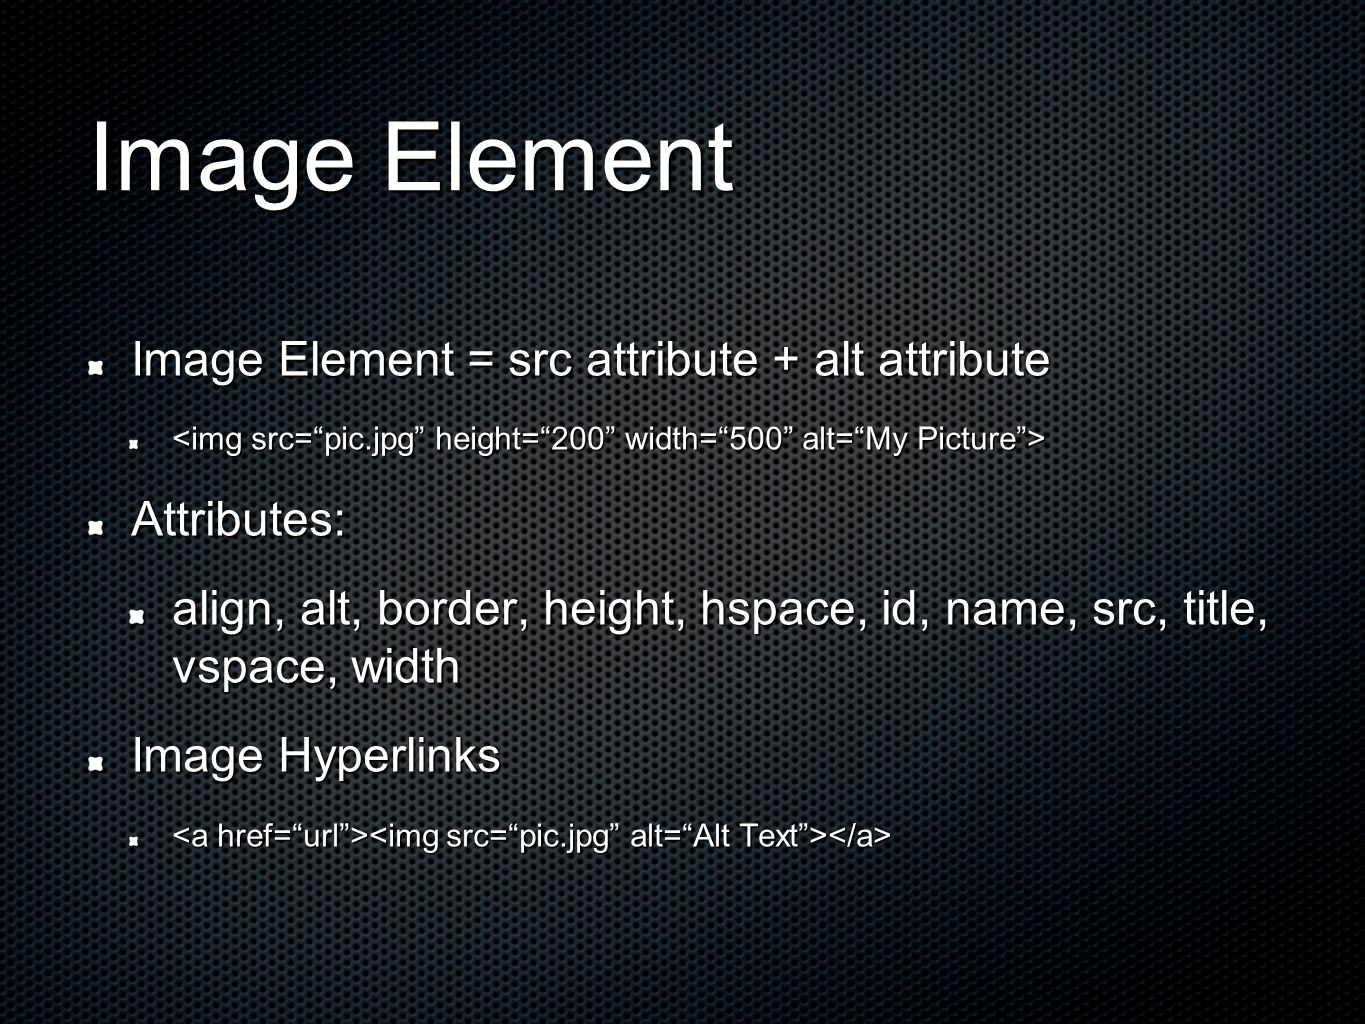 Image Element Image Element = src attribute + alt attribute Attributes: align, alt, border, height, hspace, id, name, src, title, vspace, width Image Hyperlinks